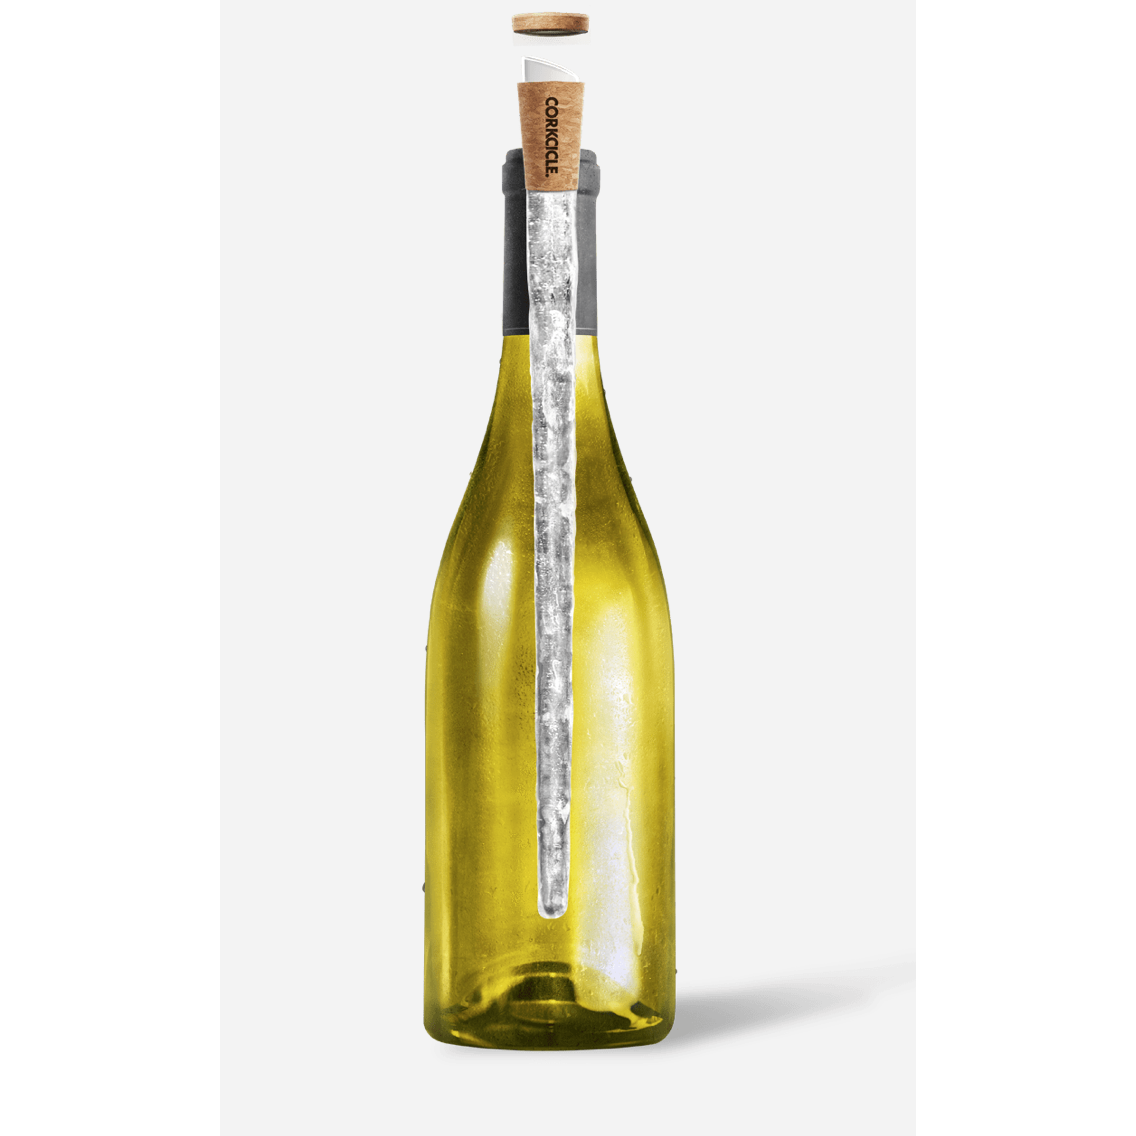 CORKCICLE AIR SHOWN IN WINE BOTTLE